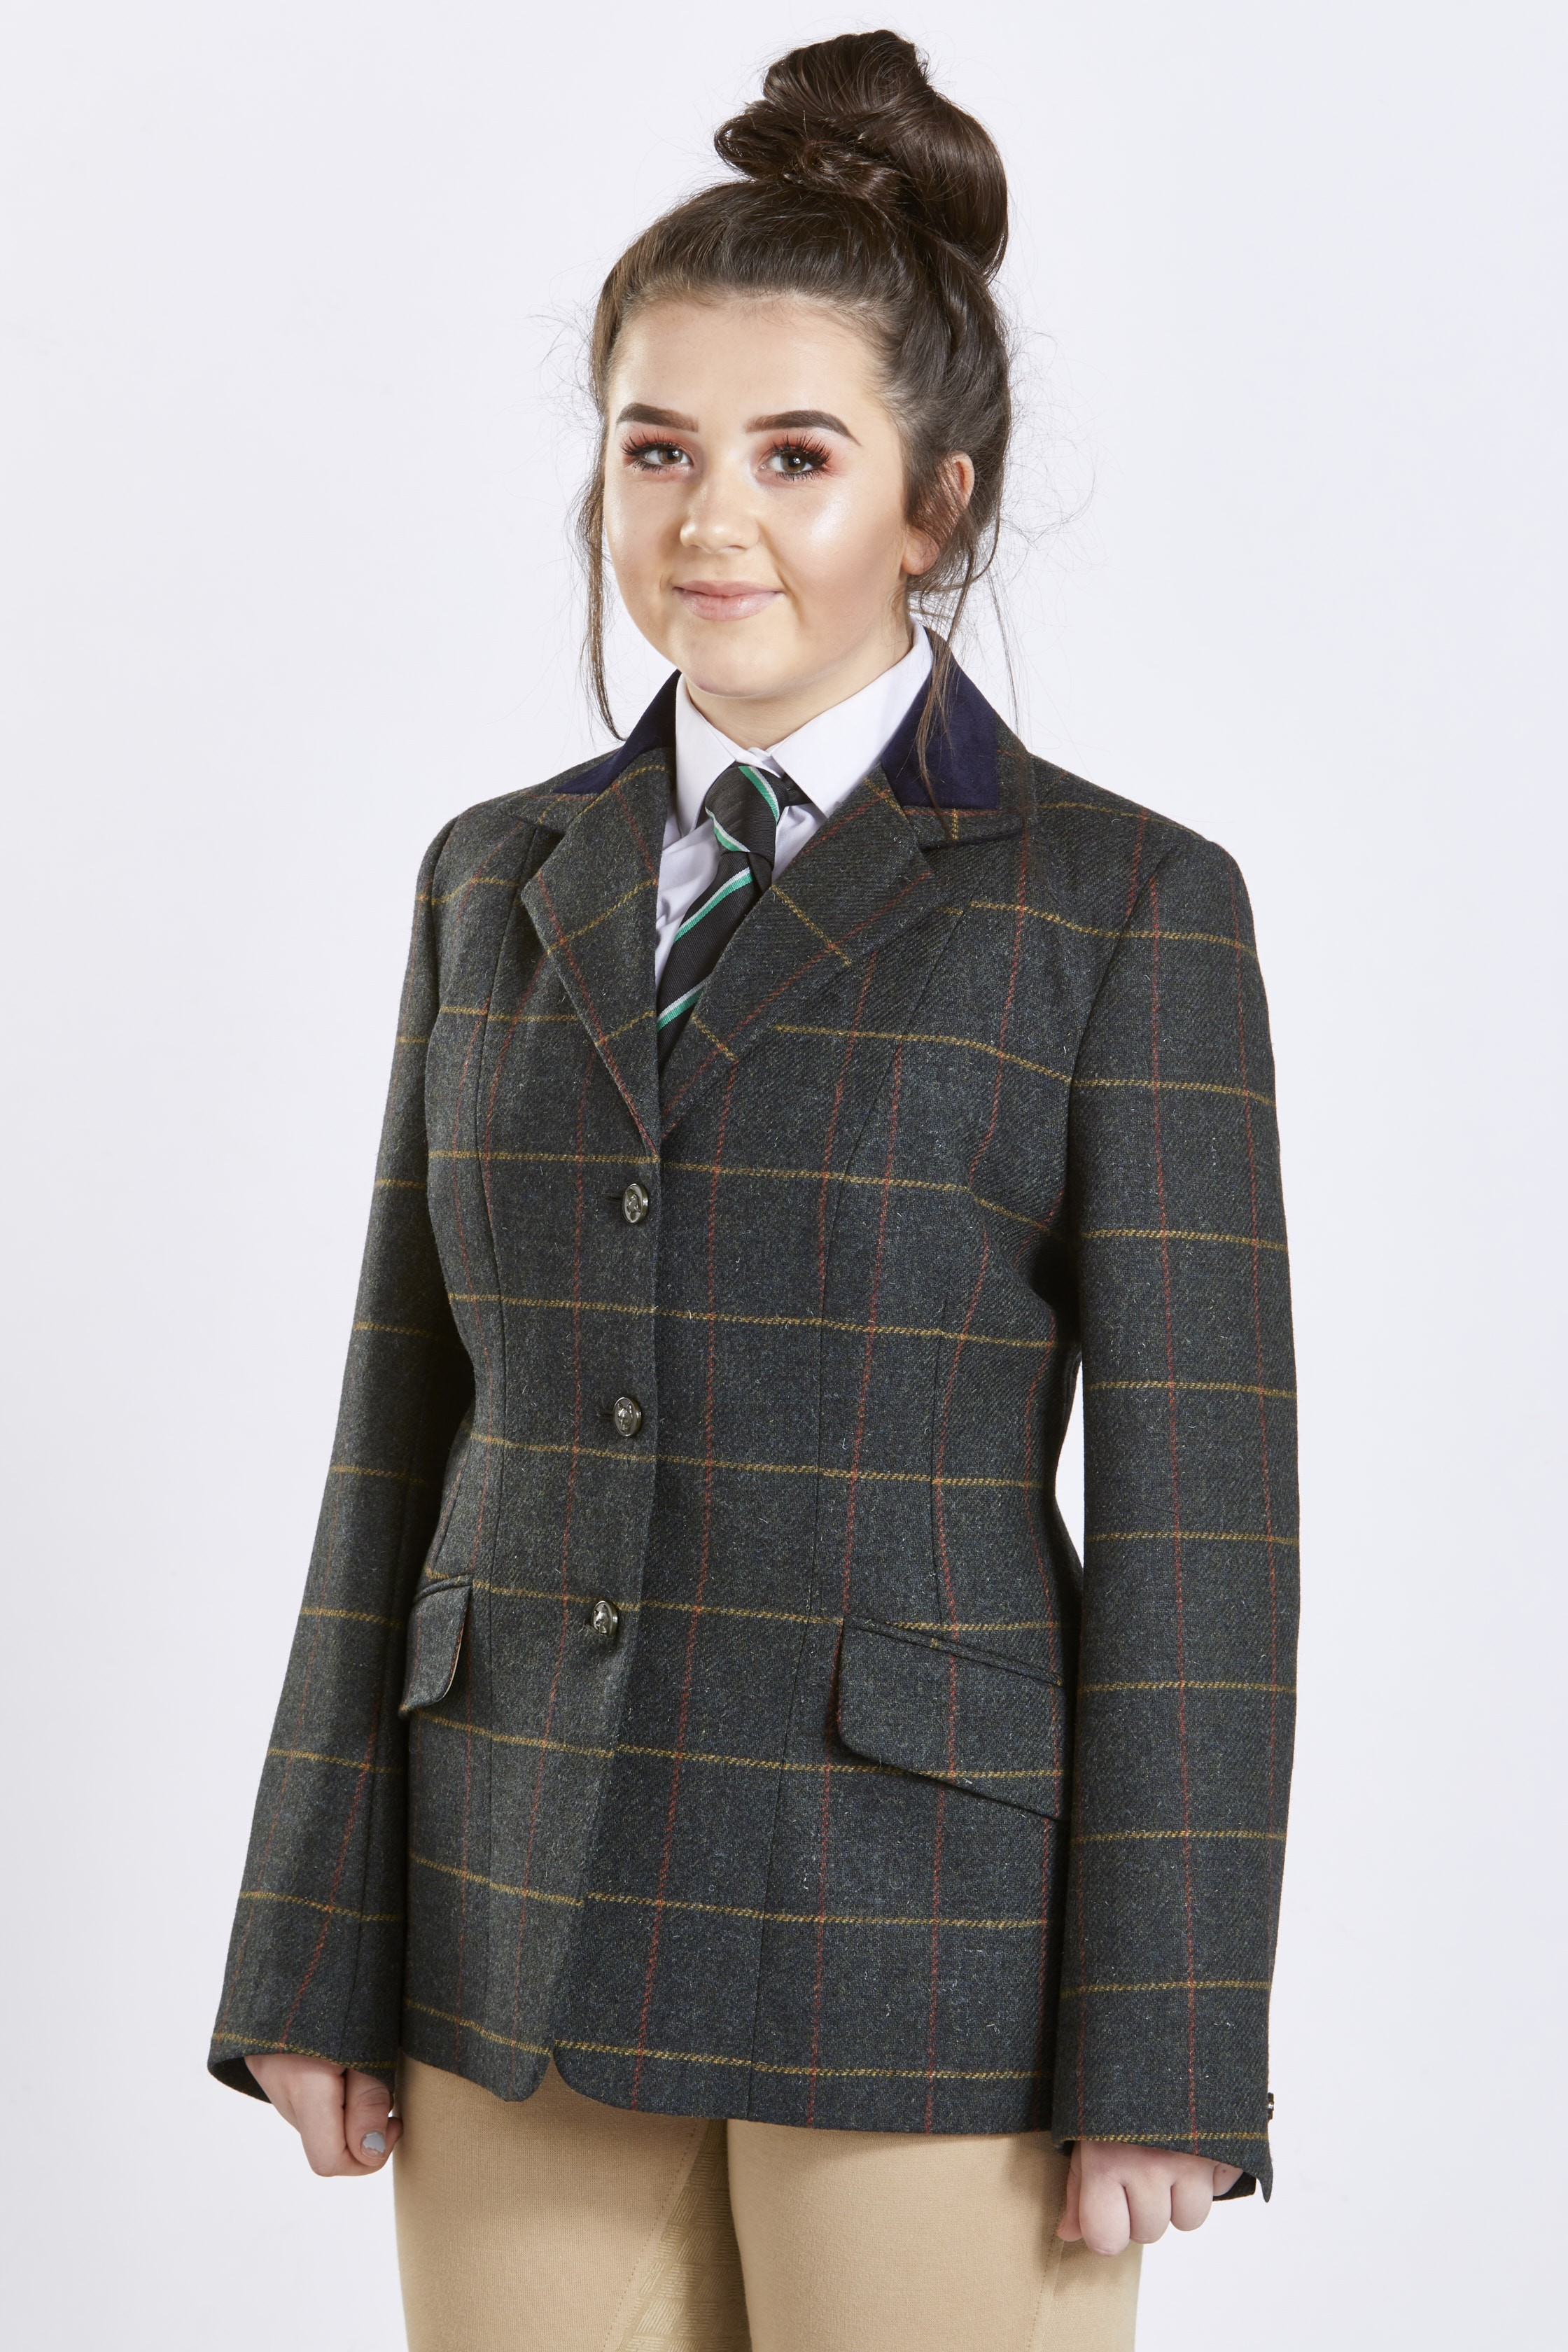 Firefoot Fewston Girls Tweed Jacket  - Thomas Irving's equestrian and accessories store  Firefoot Fewston Girls Tweed Jacket